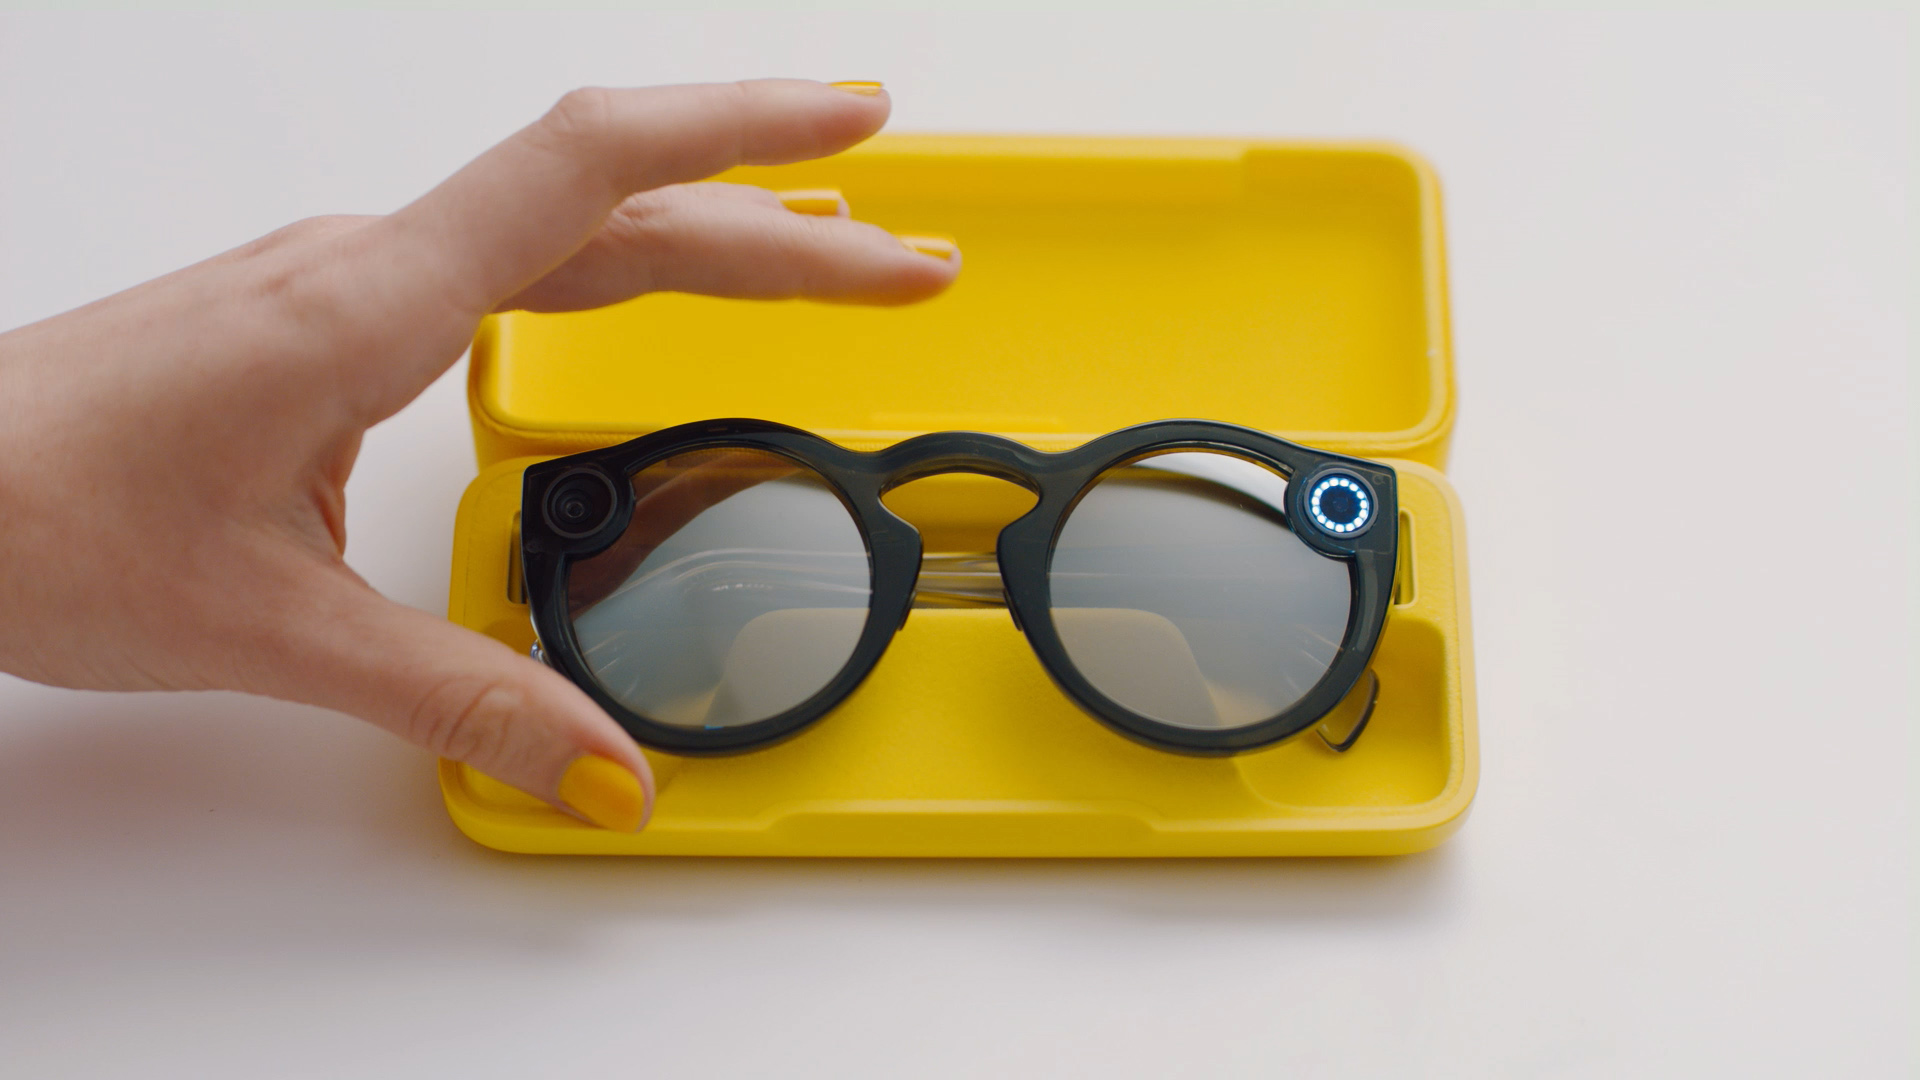 Charging Spectacles – Spectacles Support - Google Chrome 10_13_2018 11_15_58 AM.jpg